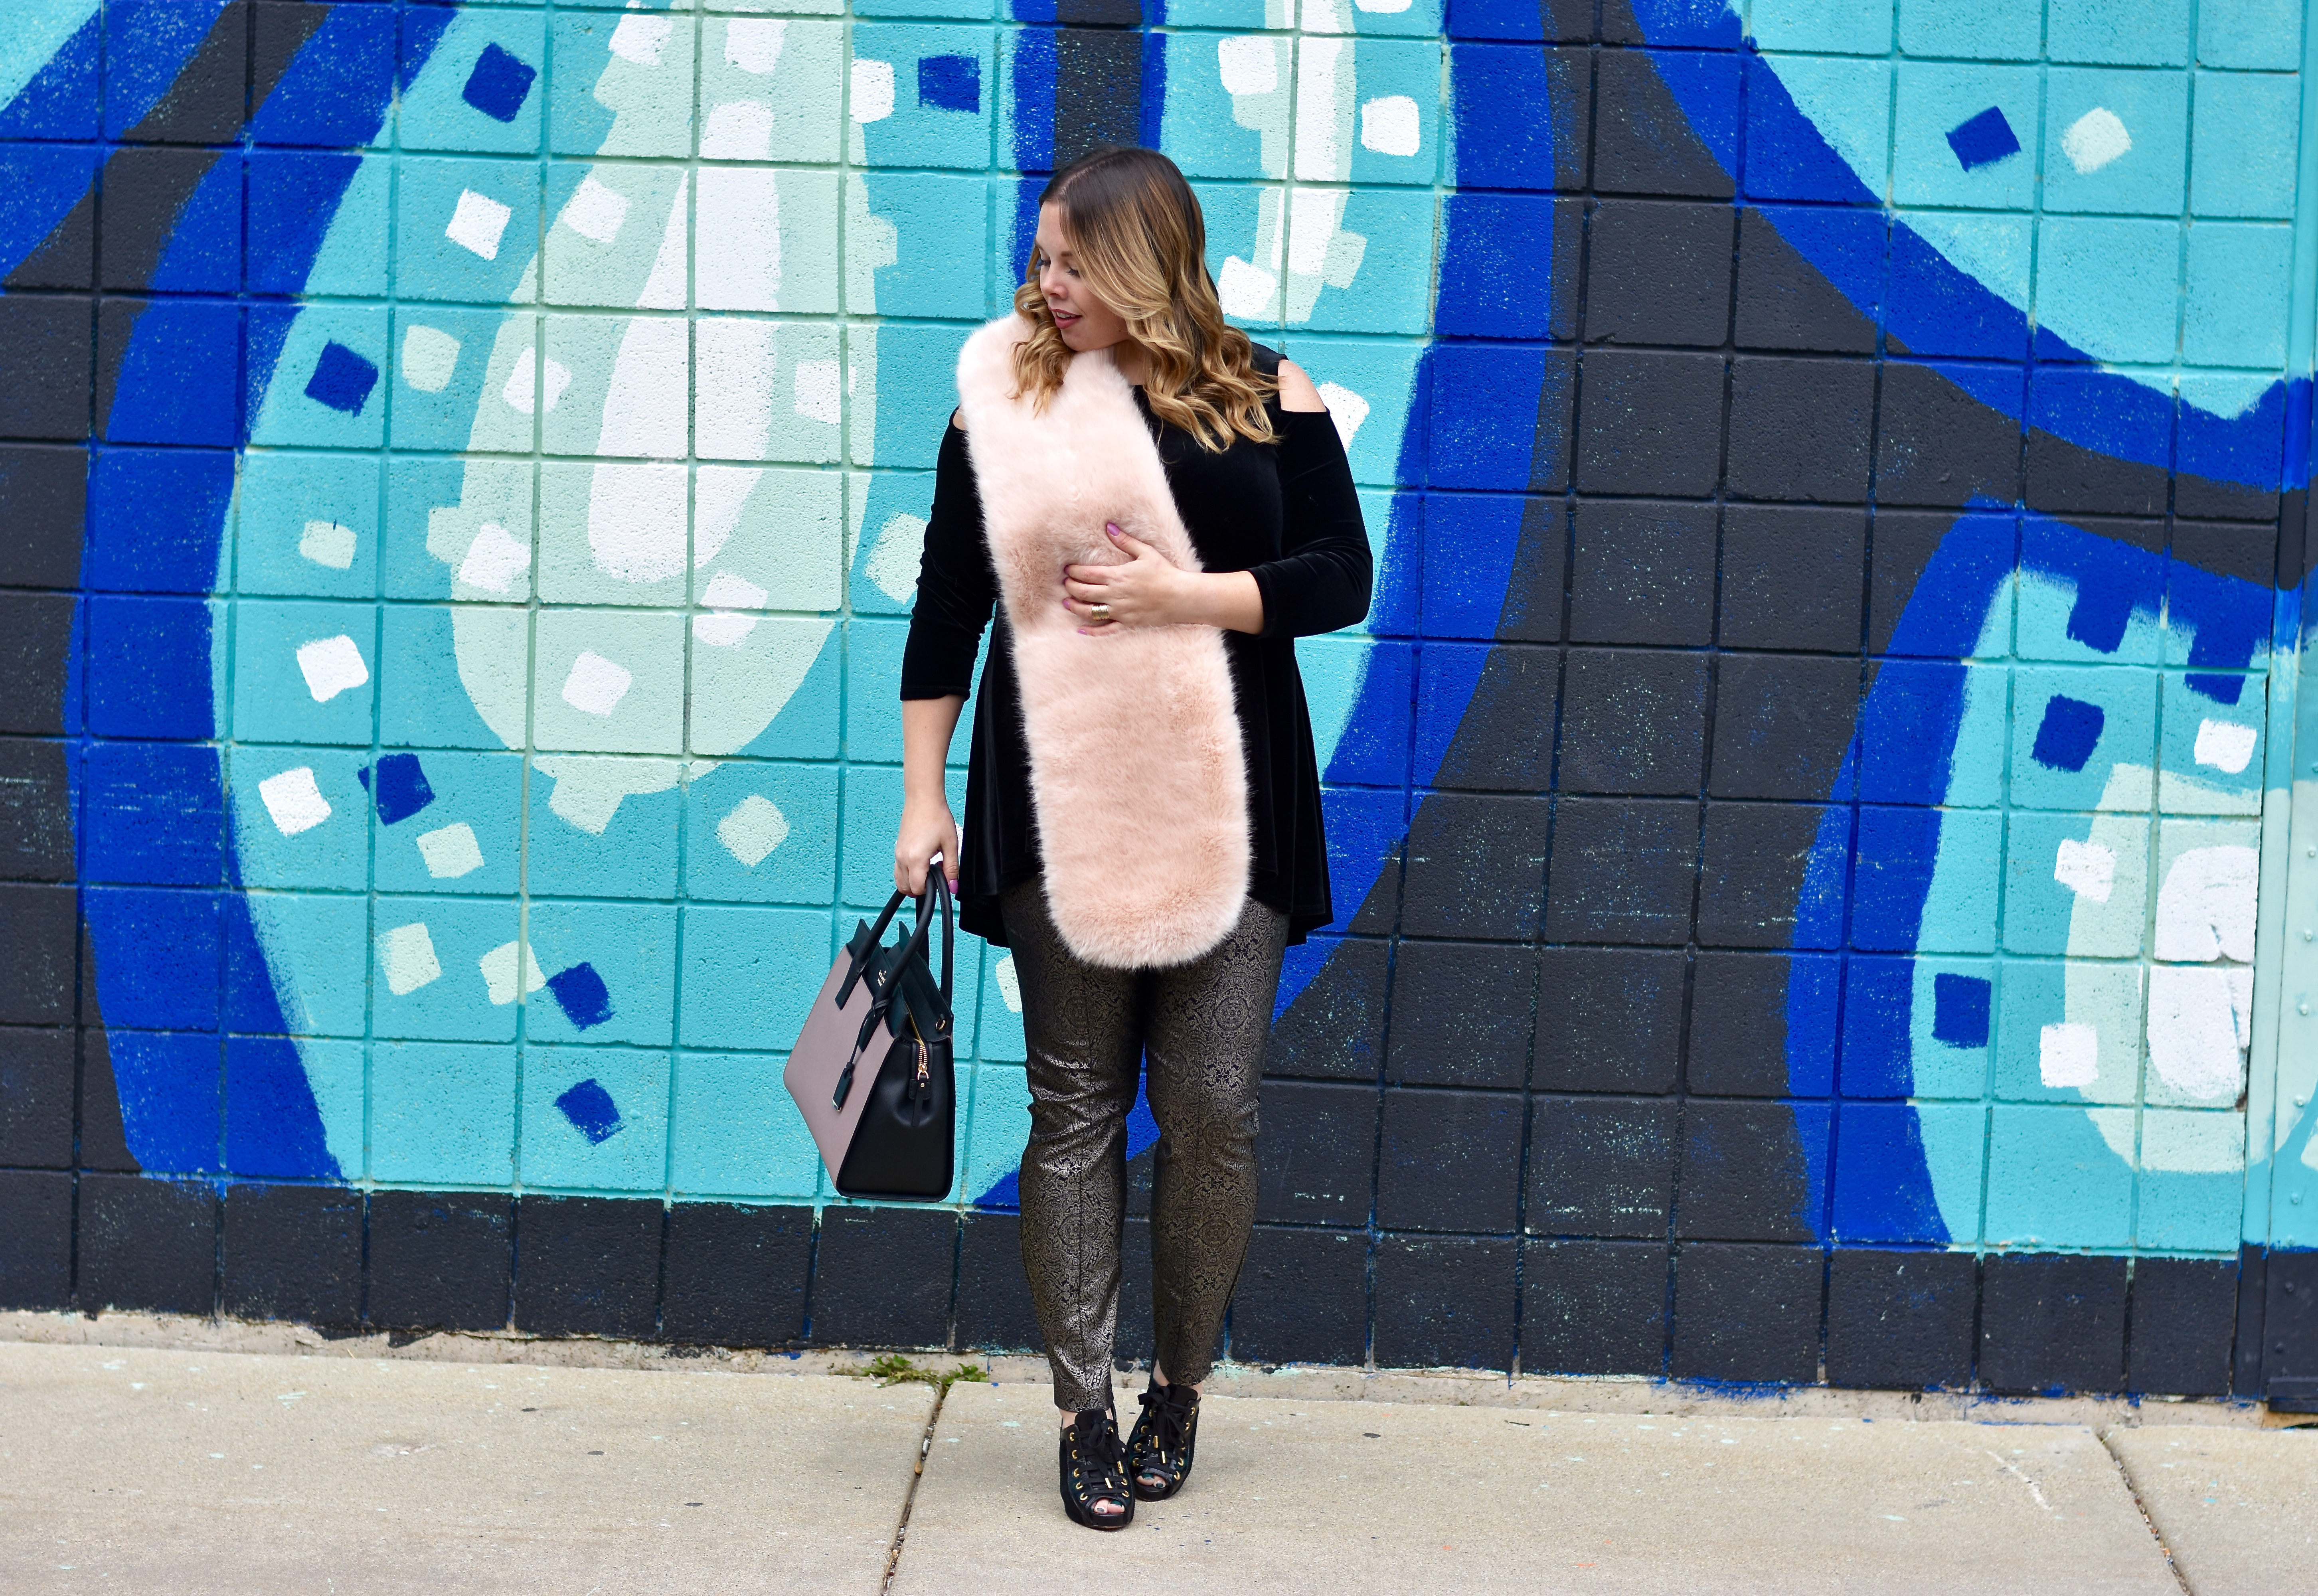 workwear wednesday: holiday party 6